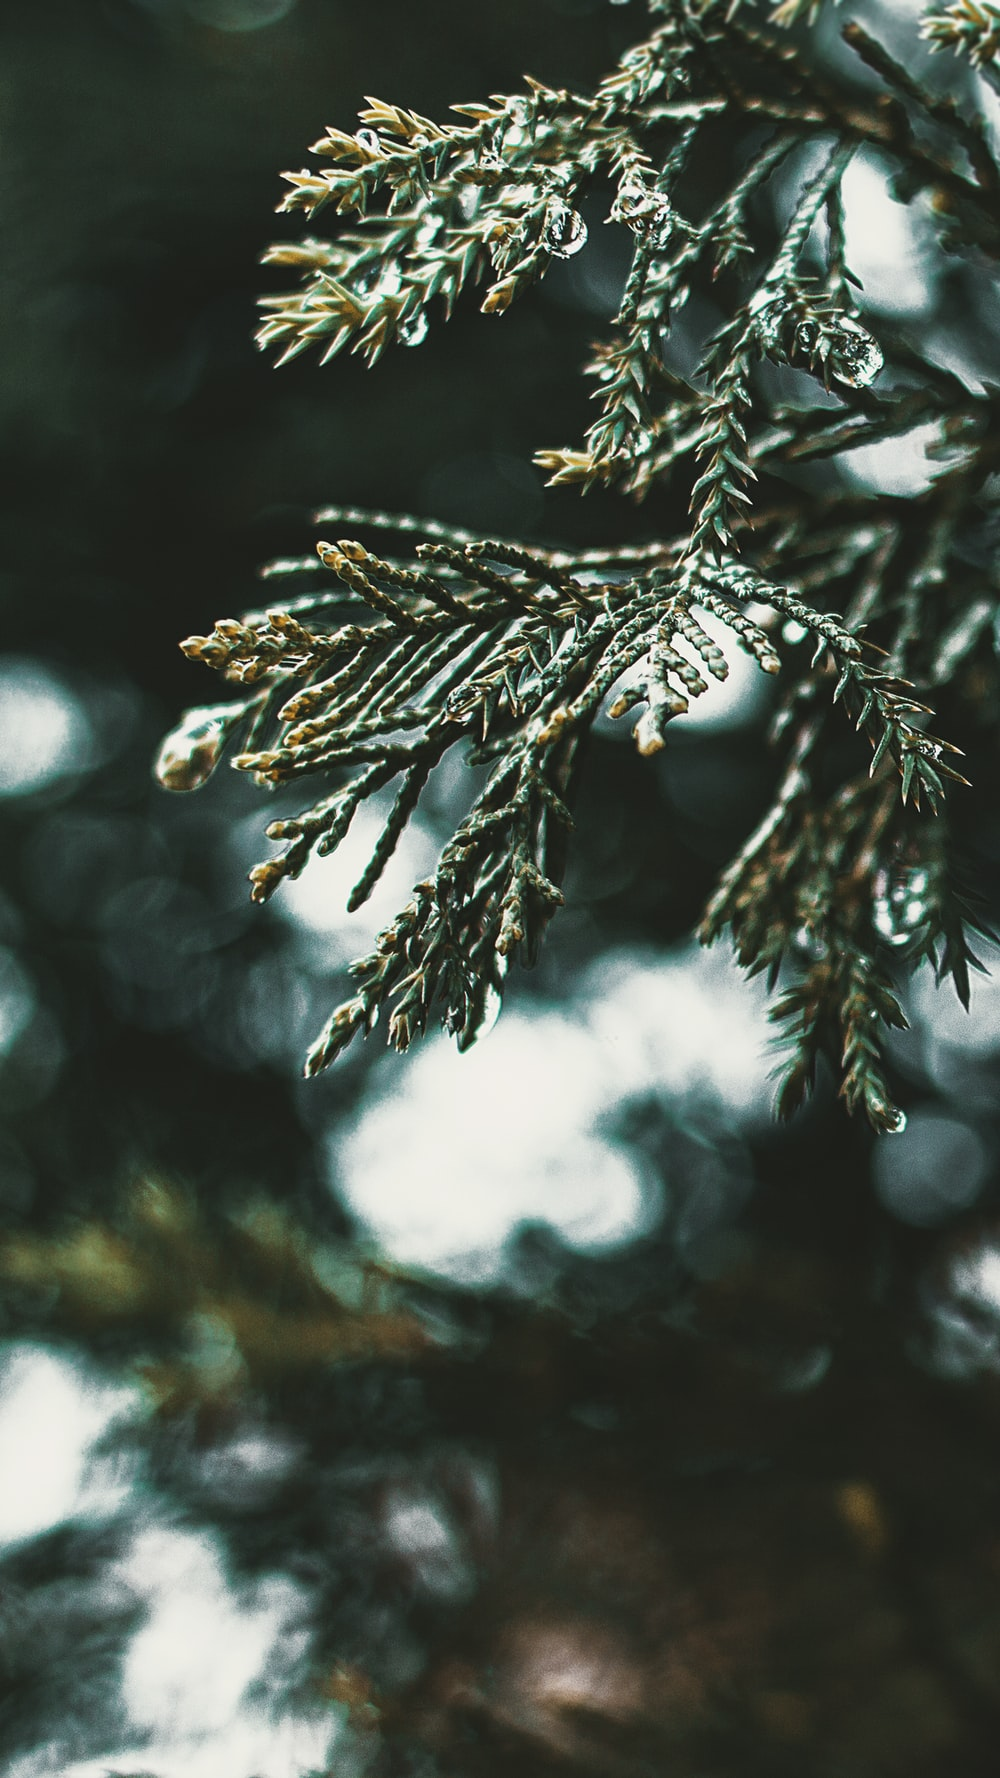 pine tree leaf close-up photography during daytime